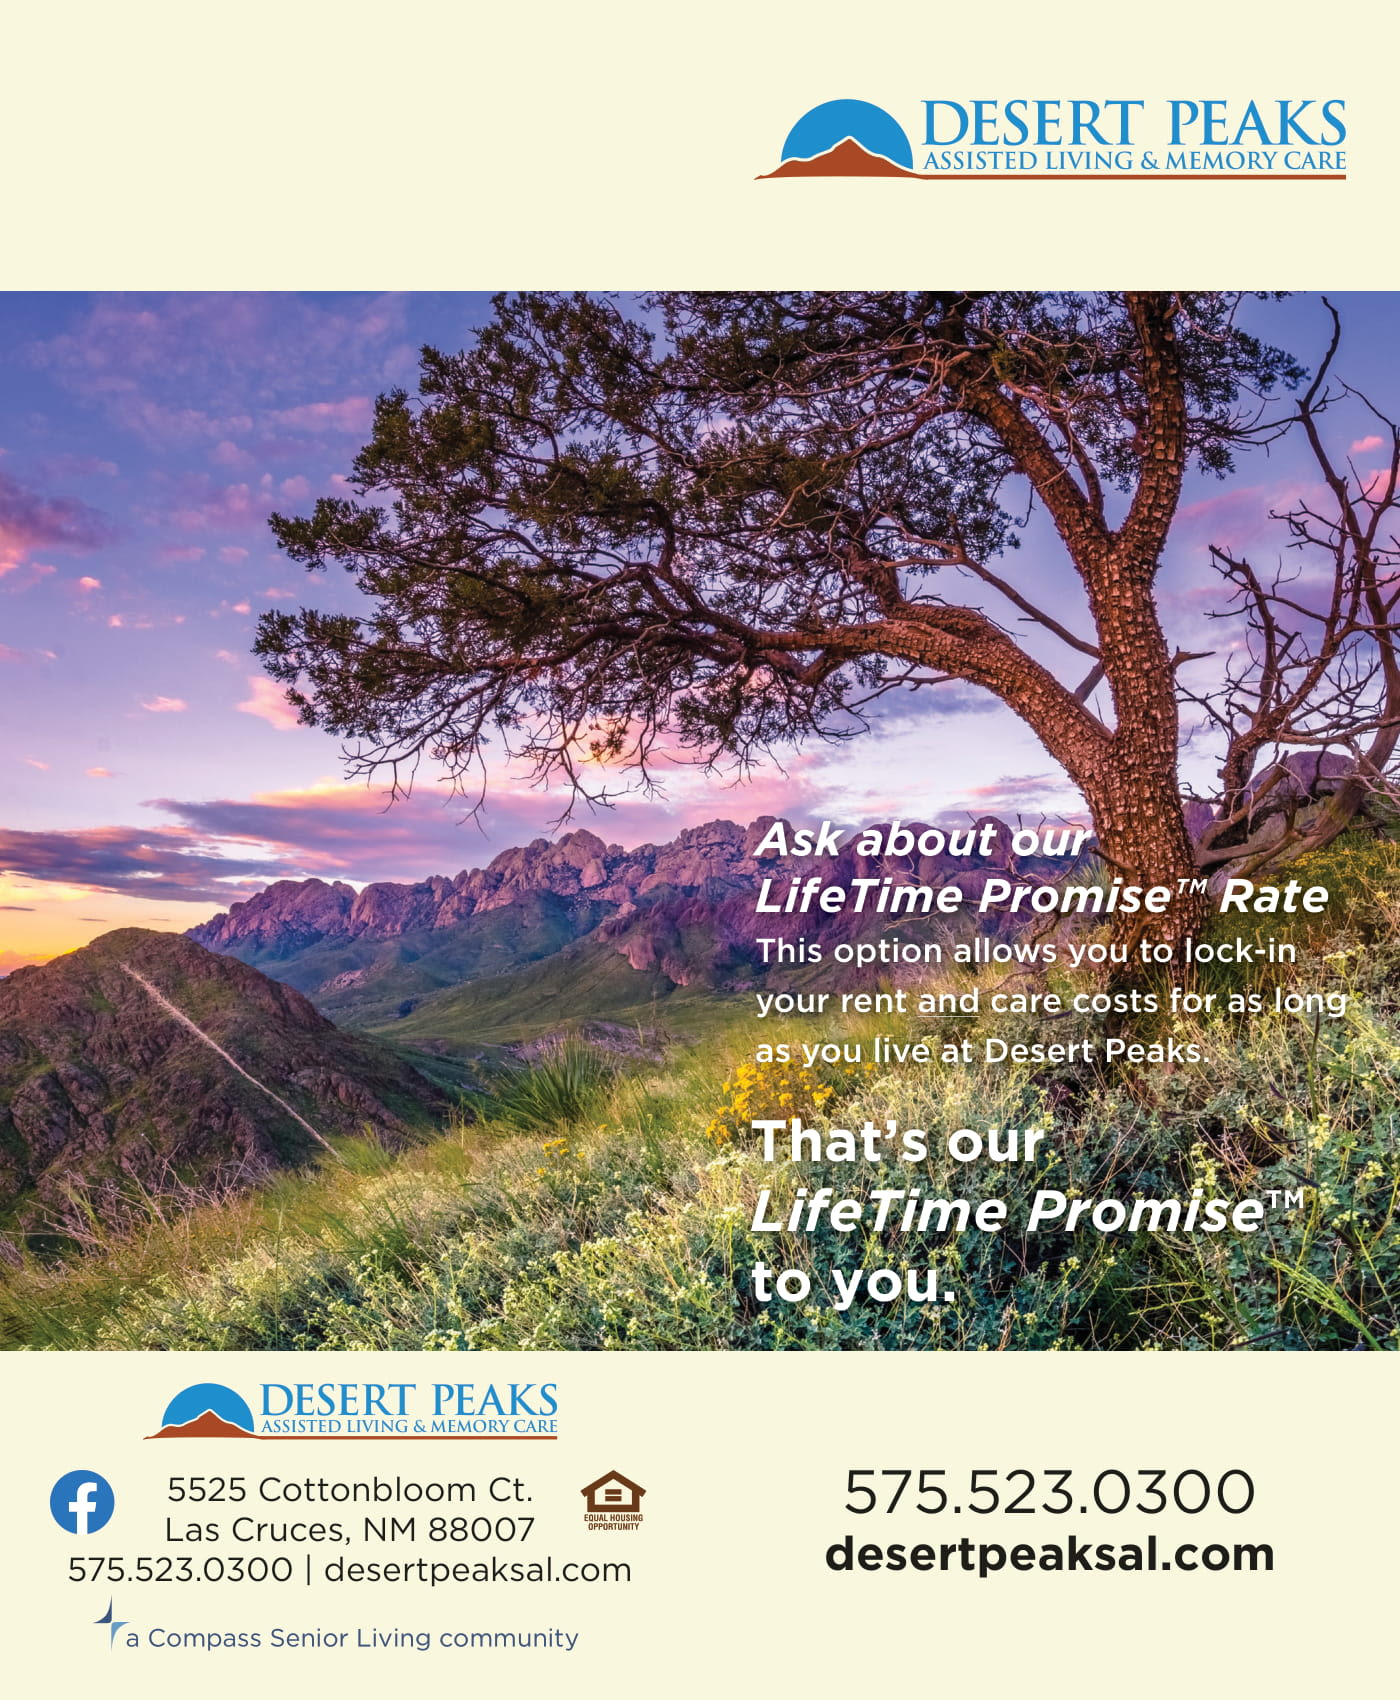 Desert Peaks Assisted Living and Memory Care flyer